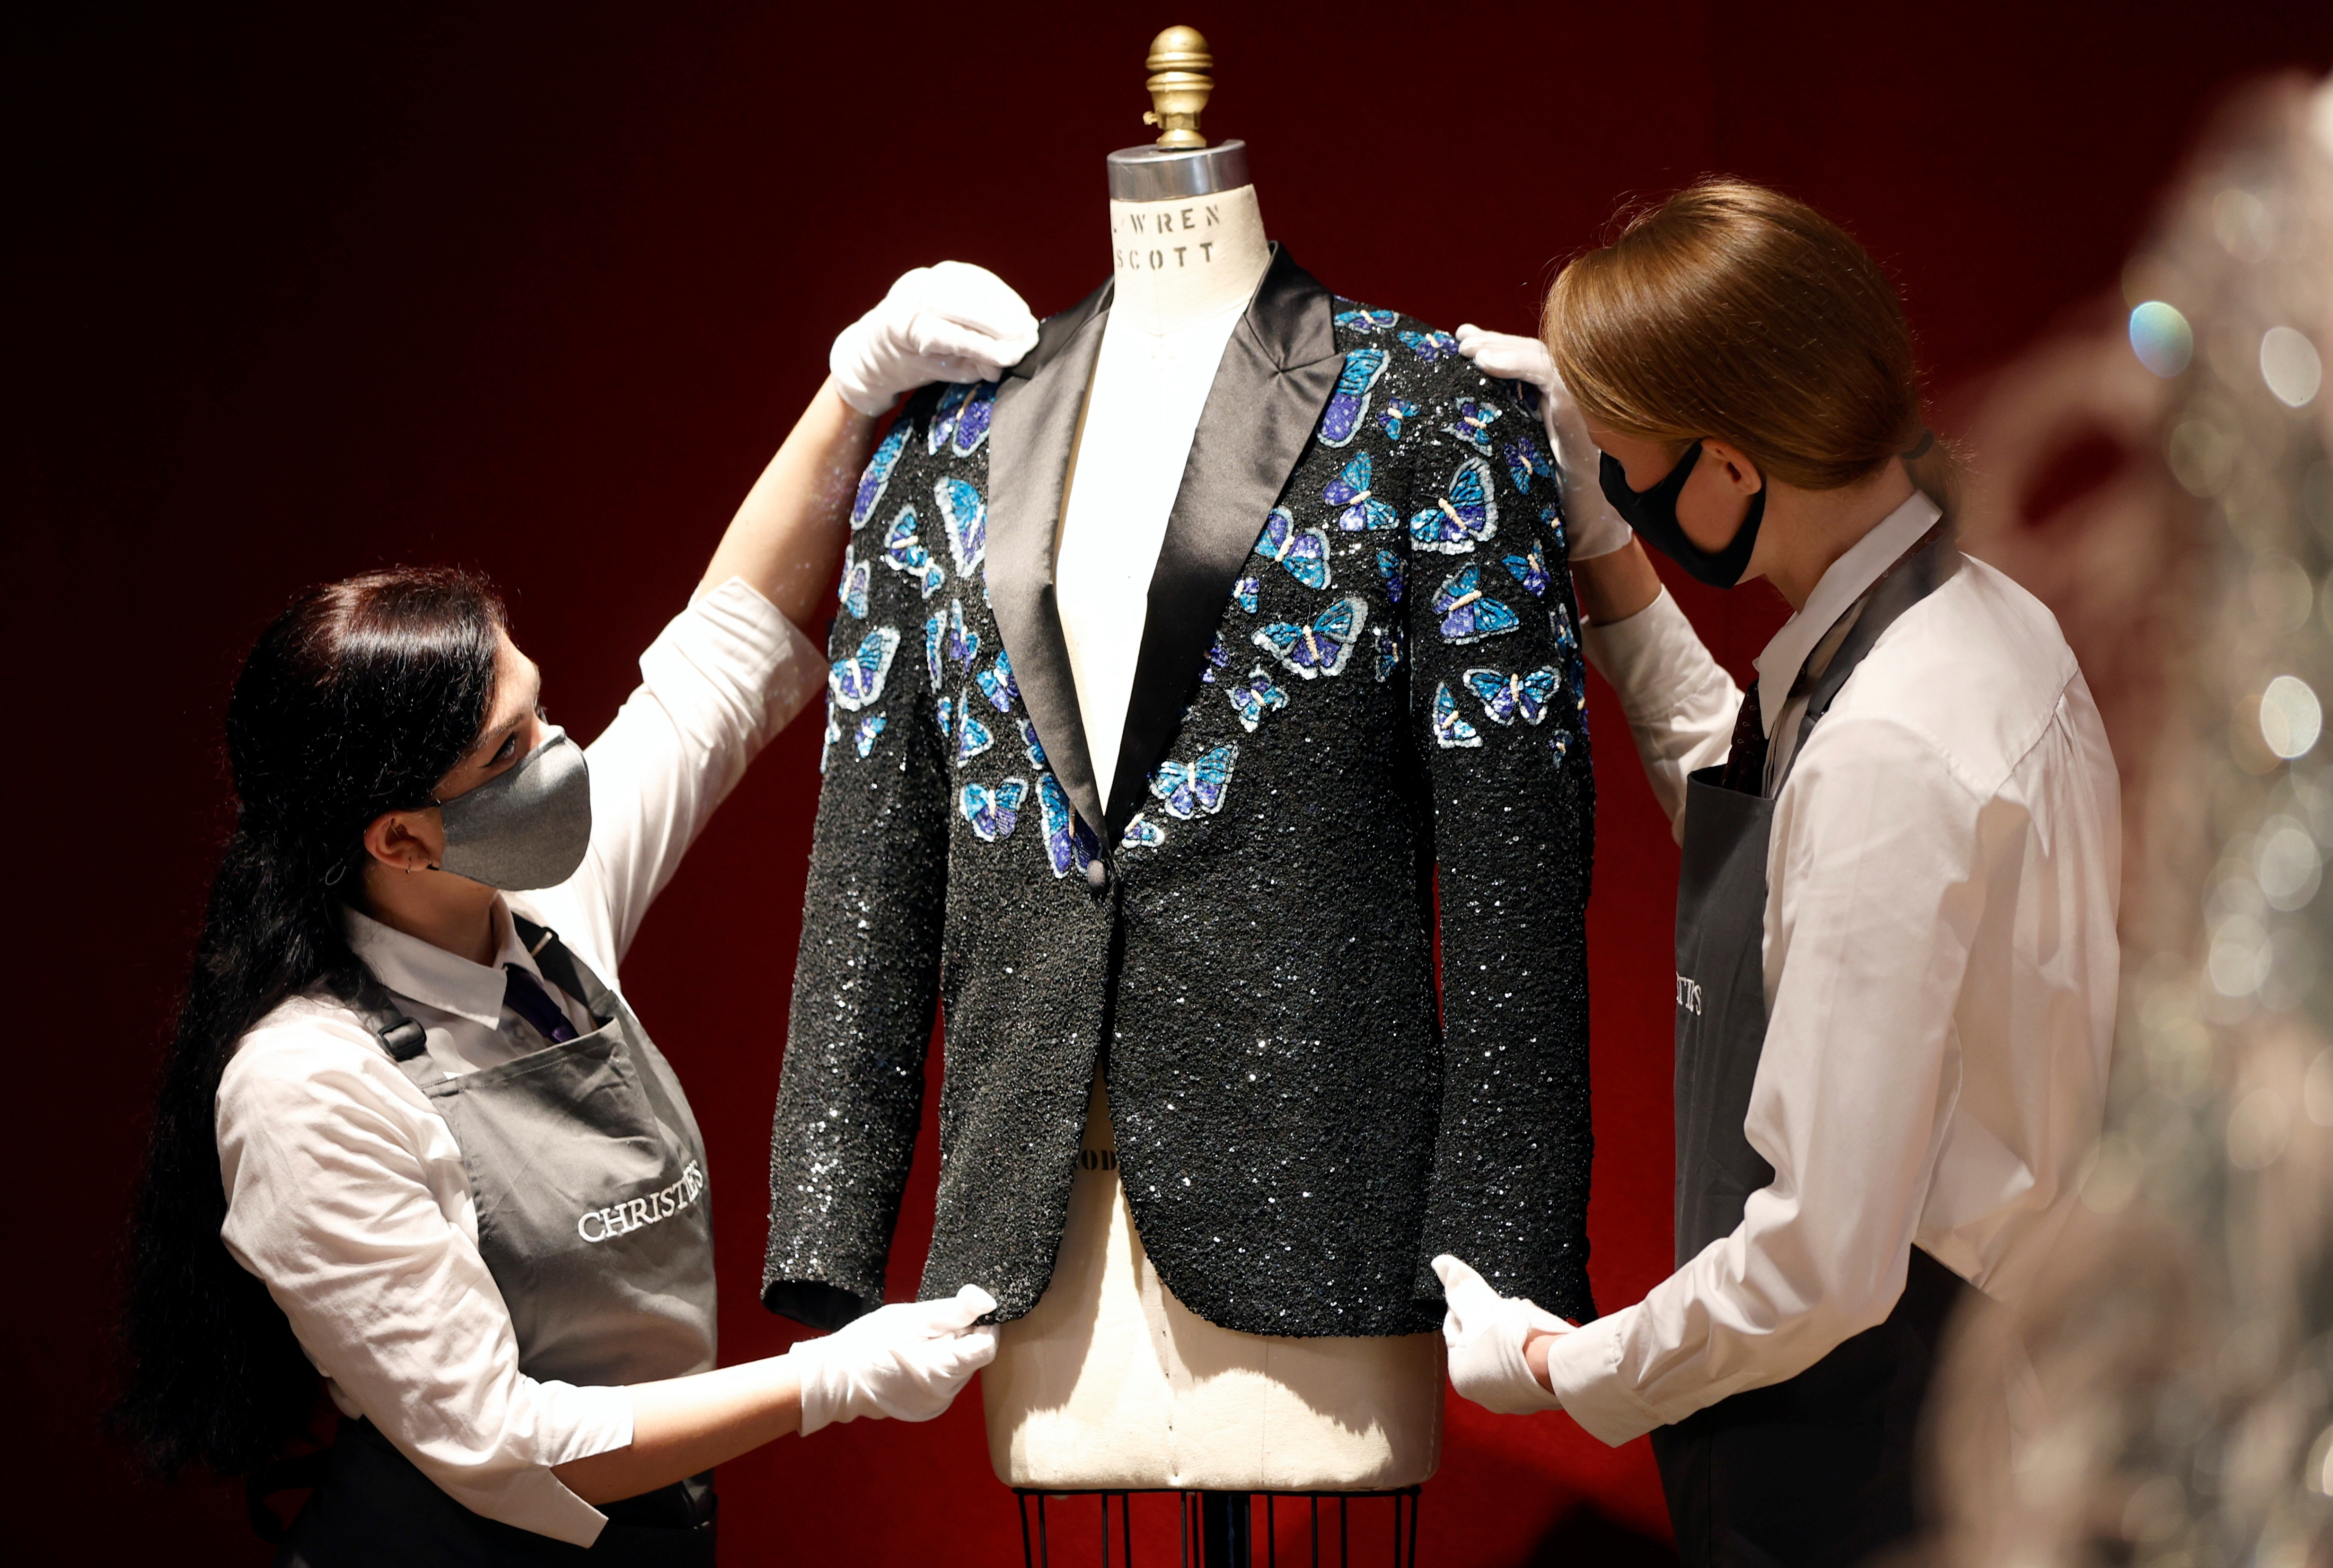 Gallery assistants pose for a photograph with the Butterfly jacket designed for Mick Jagger by designer L'Wren Scott at Christie's in London, Britain, June 10, 2021. (REUTERS)